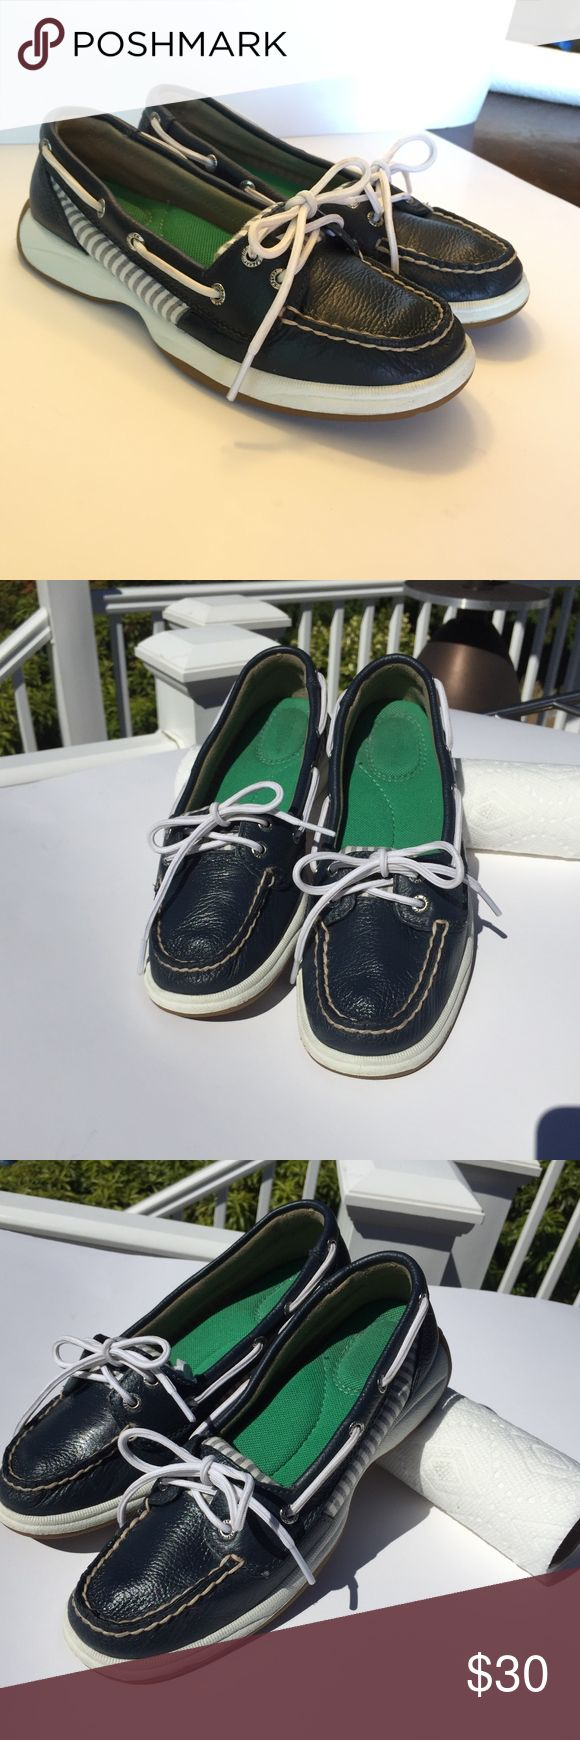 """Sperry Top-Sider Laguna Navy Blue and white stripe Women's Sperry Top-Sider Boat Shoes """"The Laguna Series""""  Navy Blue Pebbled Leather with White and Blue stripe fabric Pattern, with white laces for a clean and sporty look.  Laguna 2 eyed Sperry's have a very comfortable cushion bed with great arch support  Condition: Lightly Used, NO signs of ware  Material: Shoe is made of Pebbled Leather and Canvas material, Sole of shoe is made of rubber with great tractor for no slide  Size: Women's 6…"""